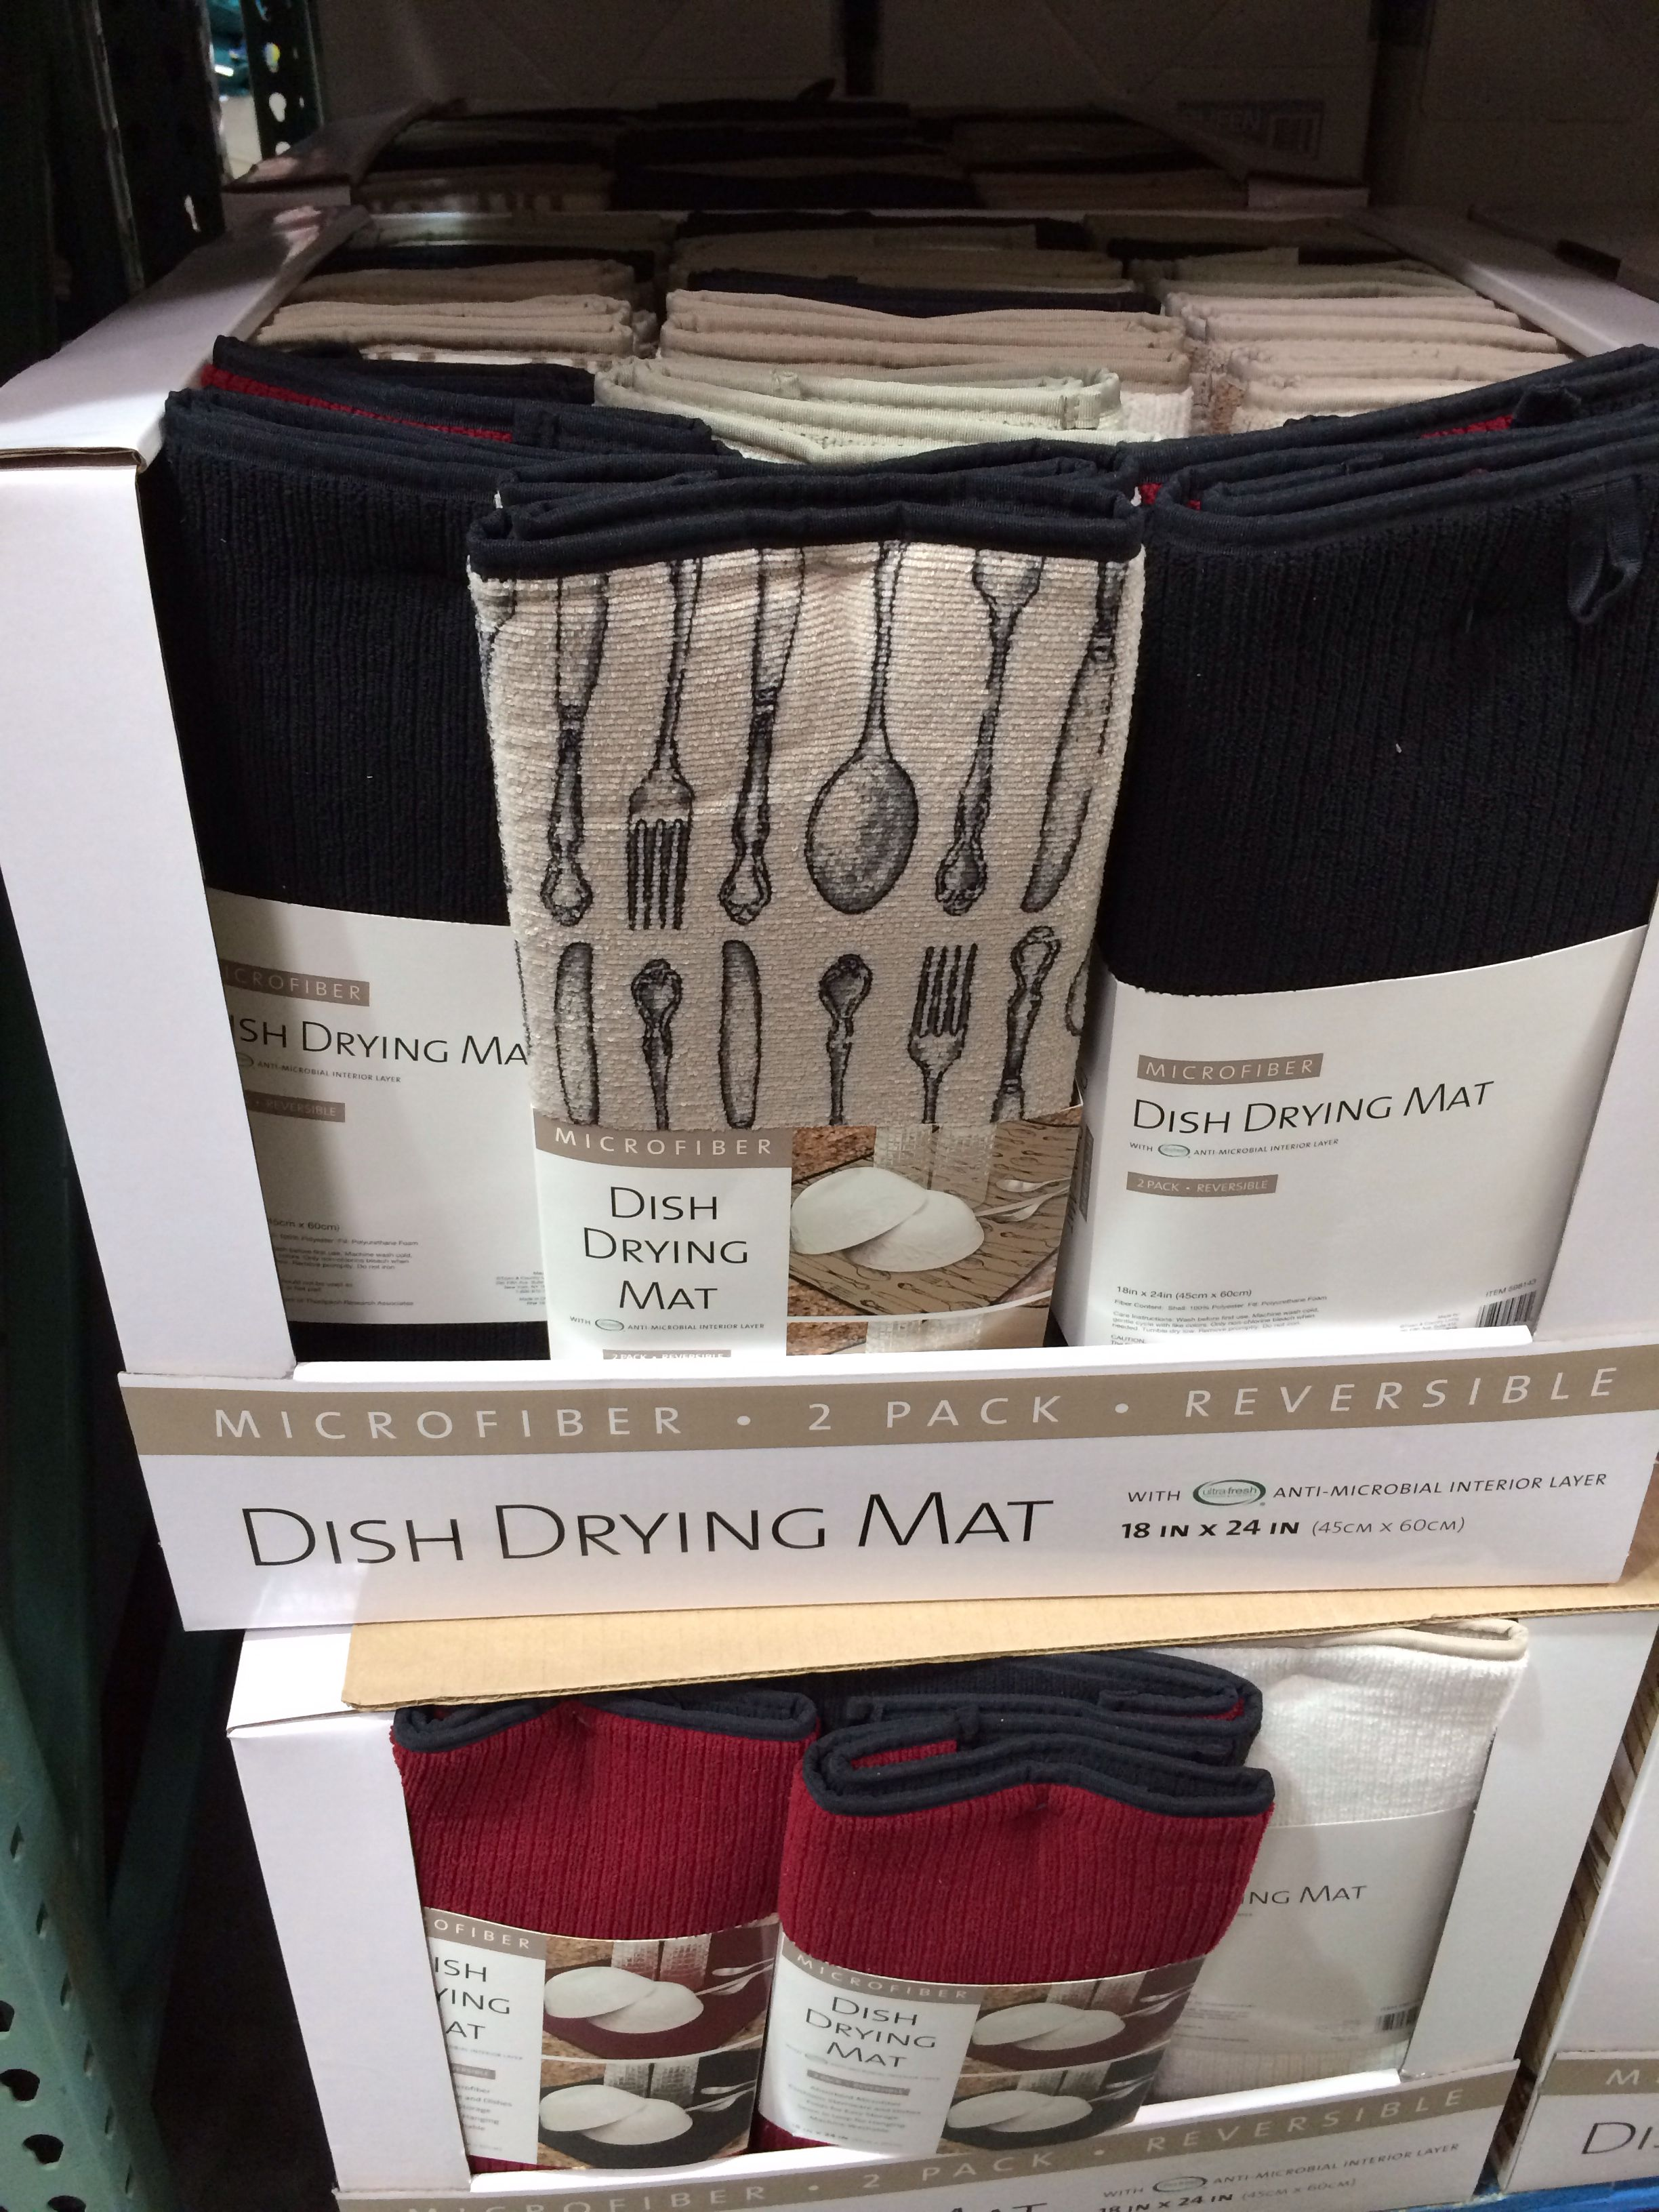 Rubber mats costco - Tamy Dish Drying Mats Costco